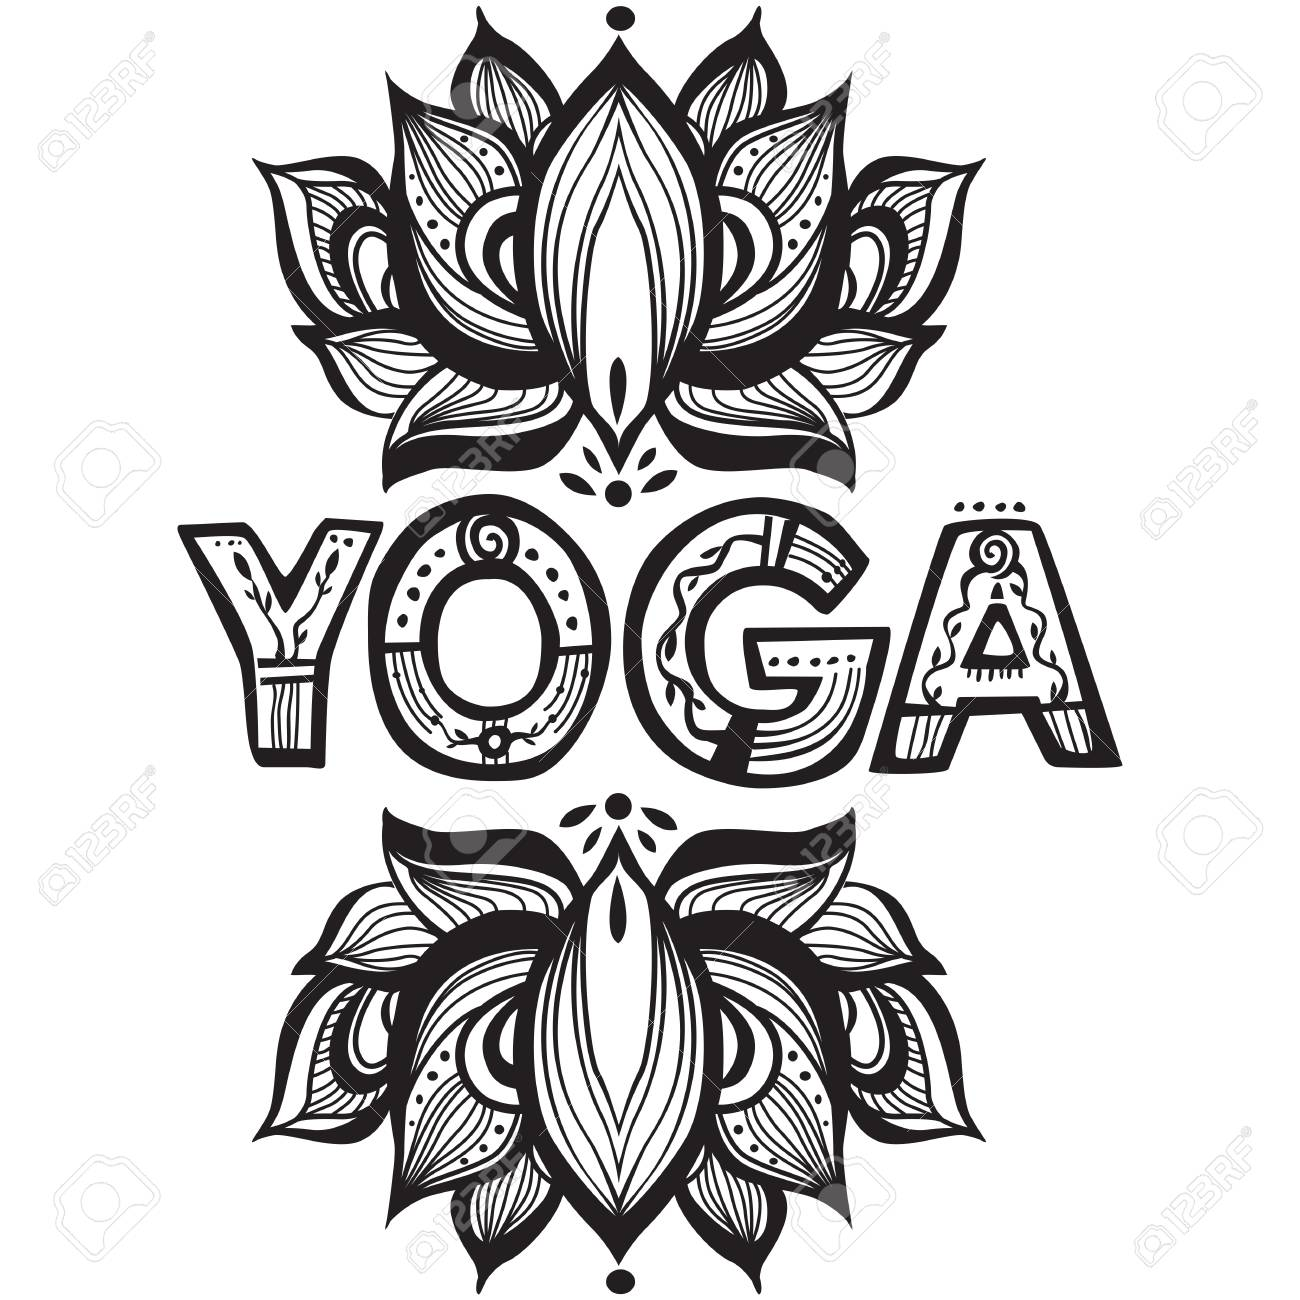 Word Yoga With Lotus Flower Silhouette Royalty Free Cliparts